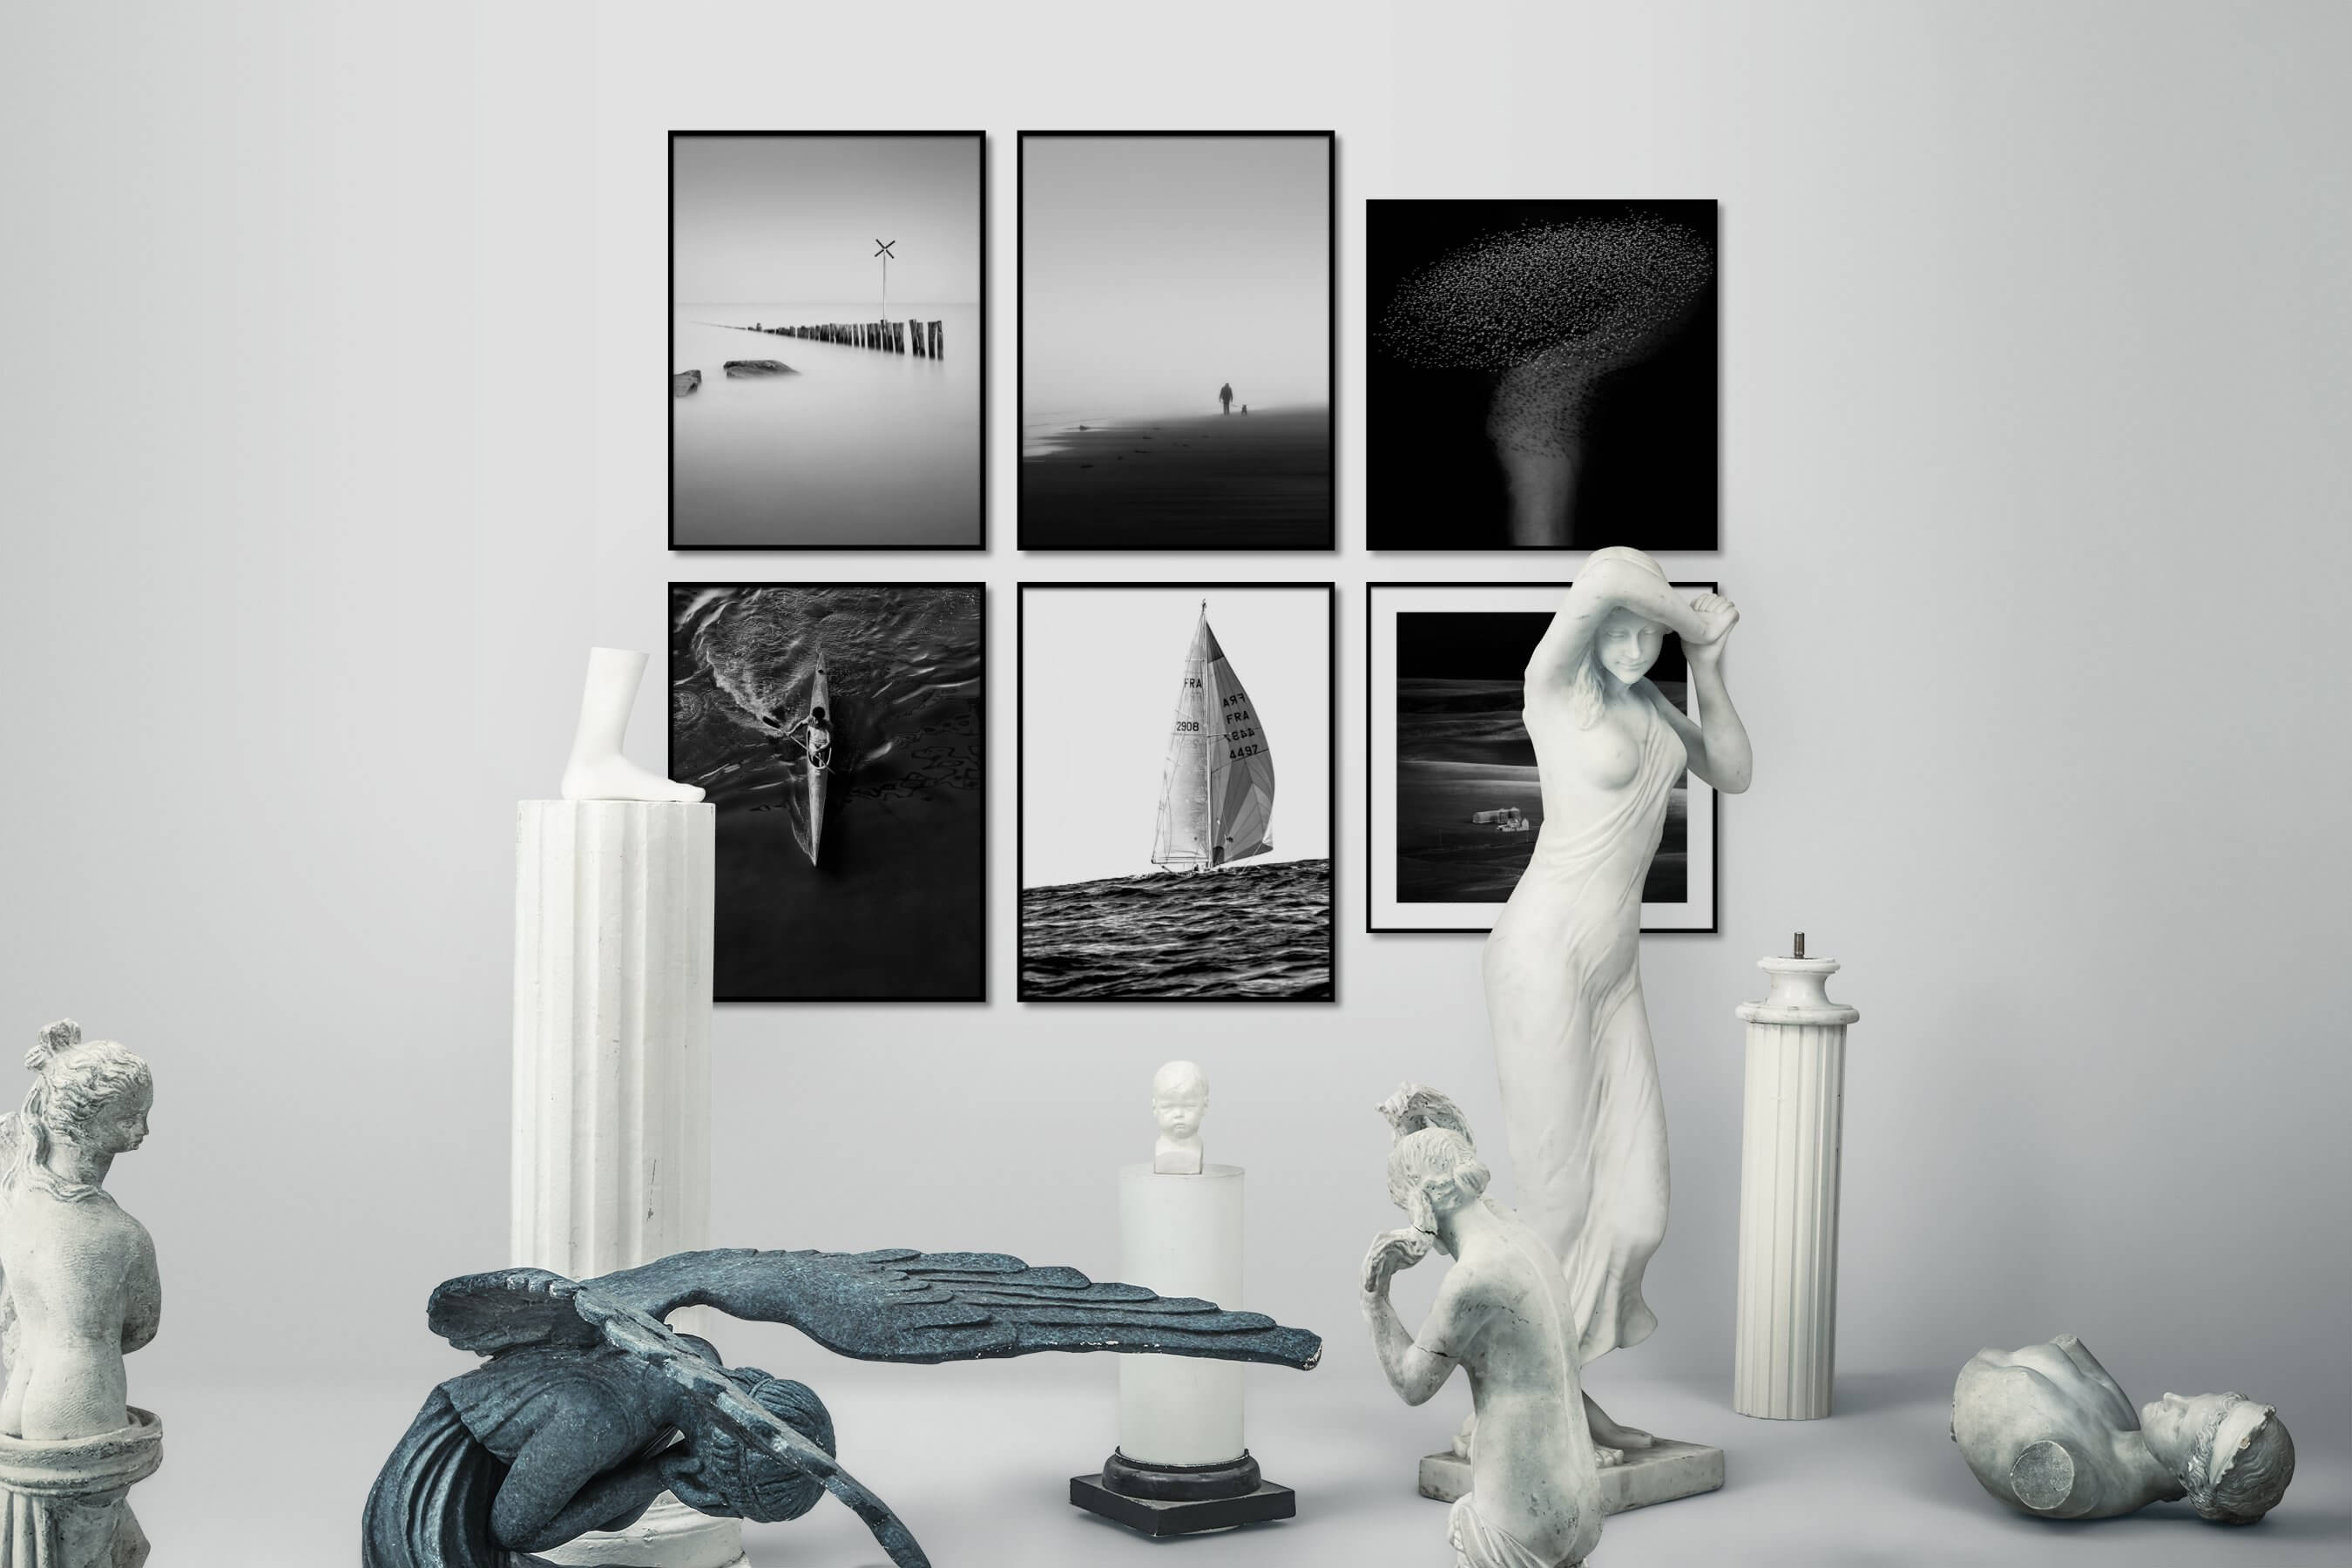 Gallery wall idea with six framed pictures arranged on a wall depicting Black & White, For the Minimalist, Mindfulness, Beach & Water, Dark Tones, Animals, and Country Life